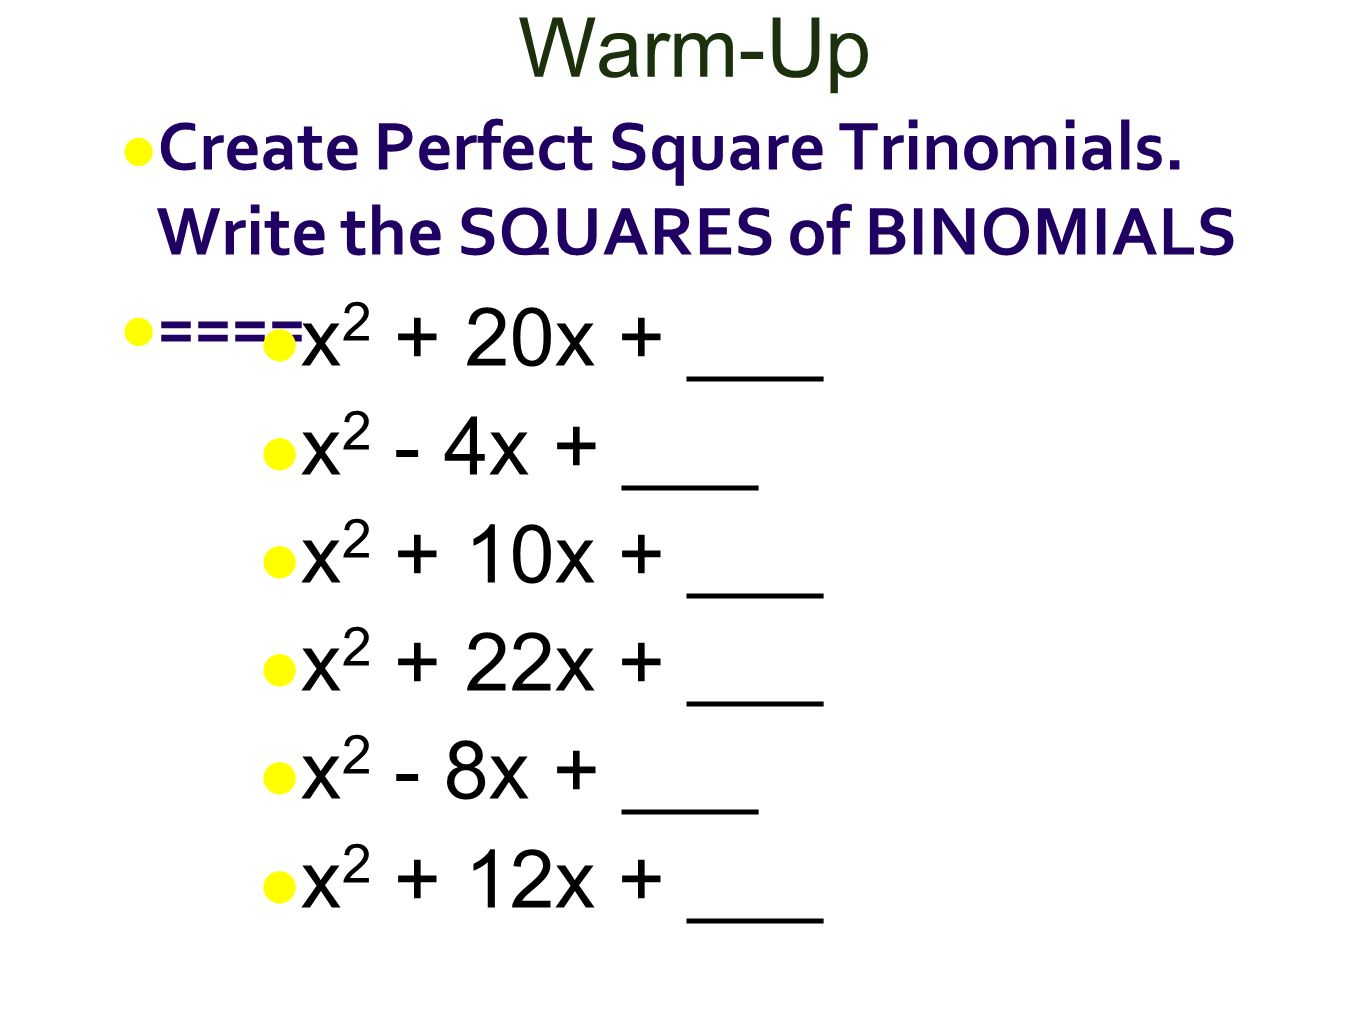 Writing a trinomial as the square of a binomial